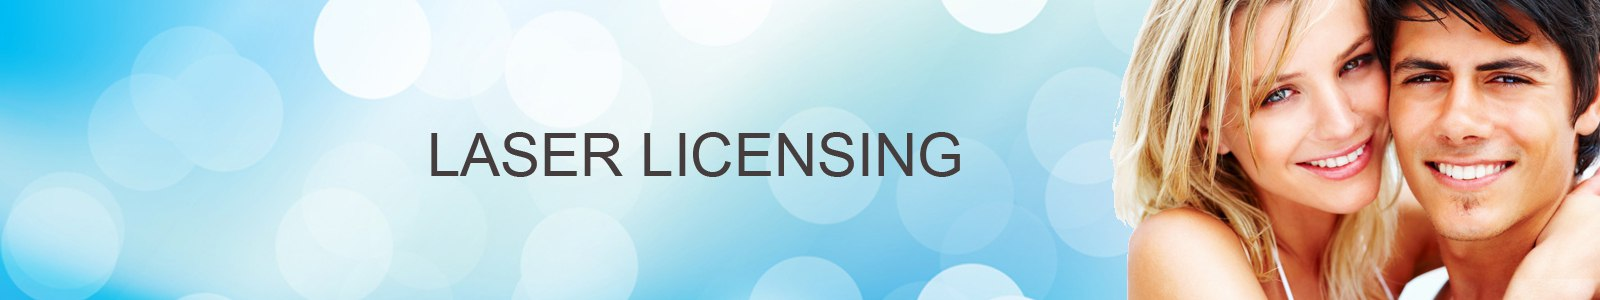 Laser hair Removal Licensing